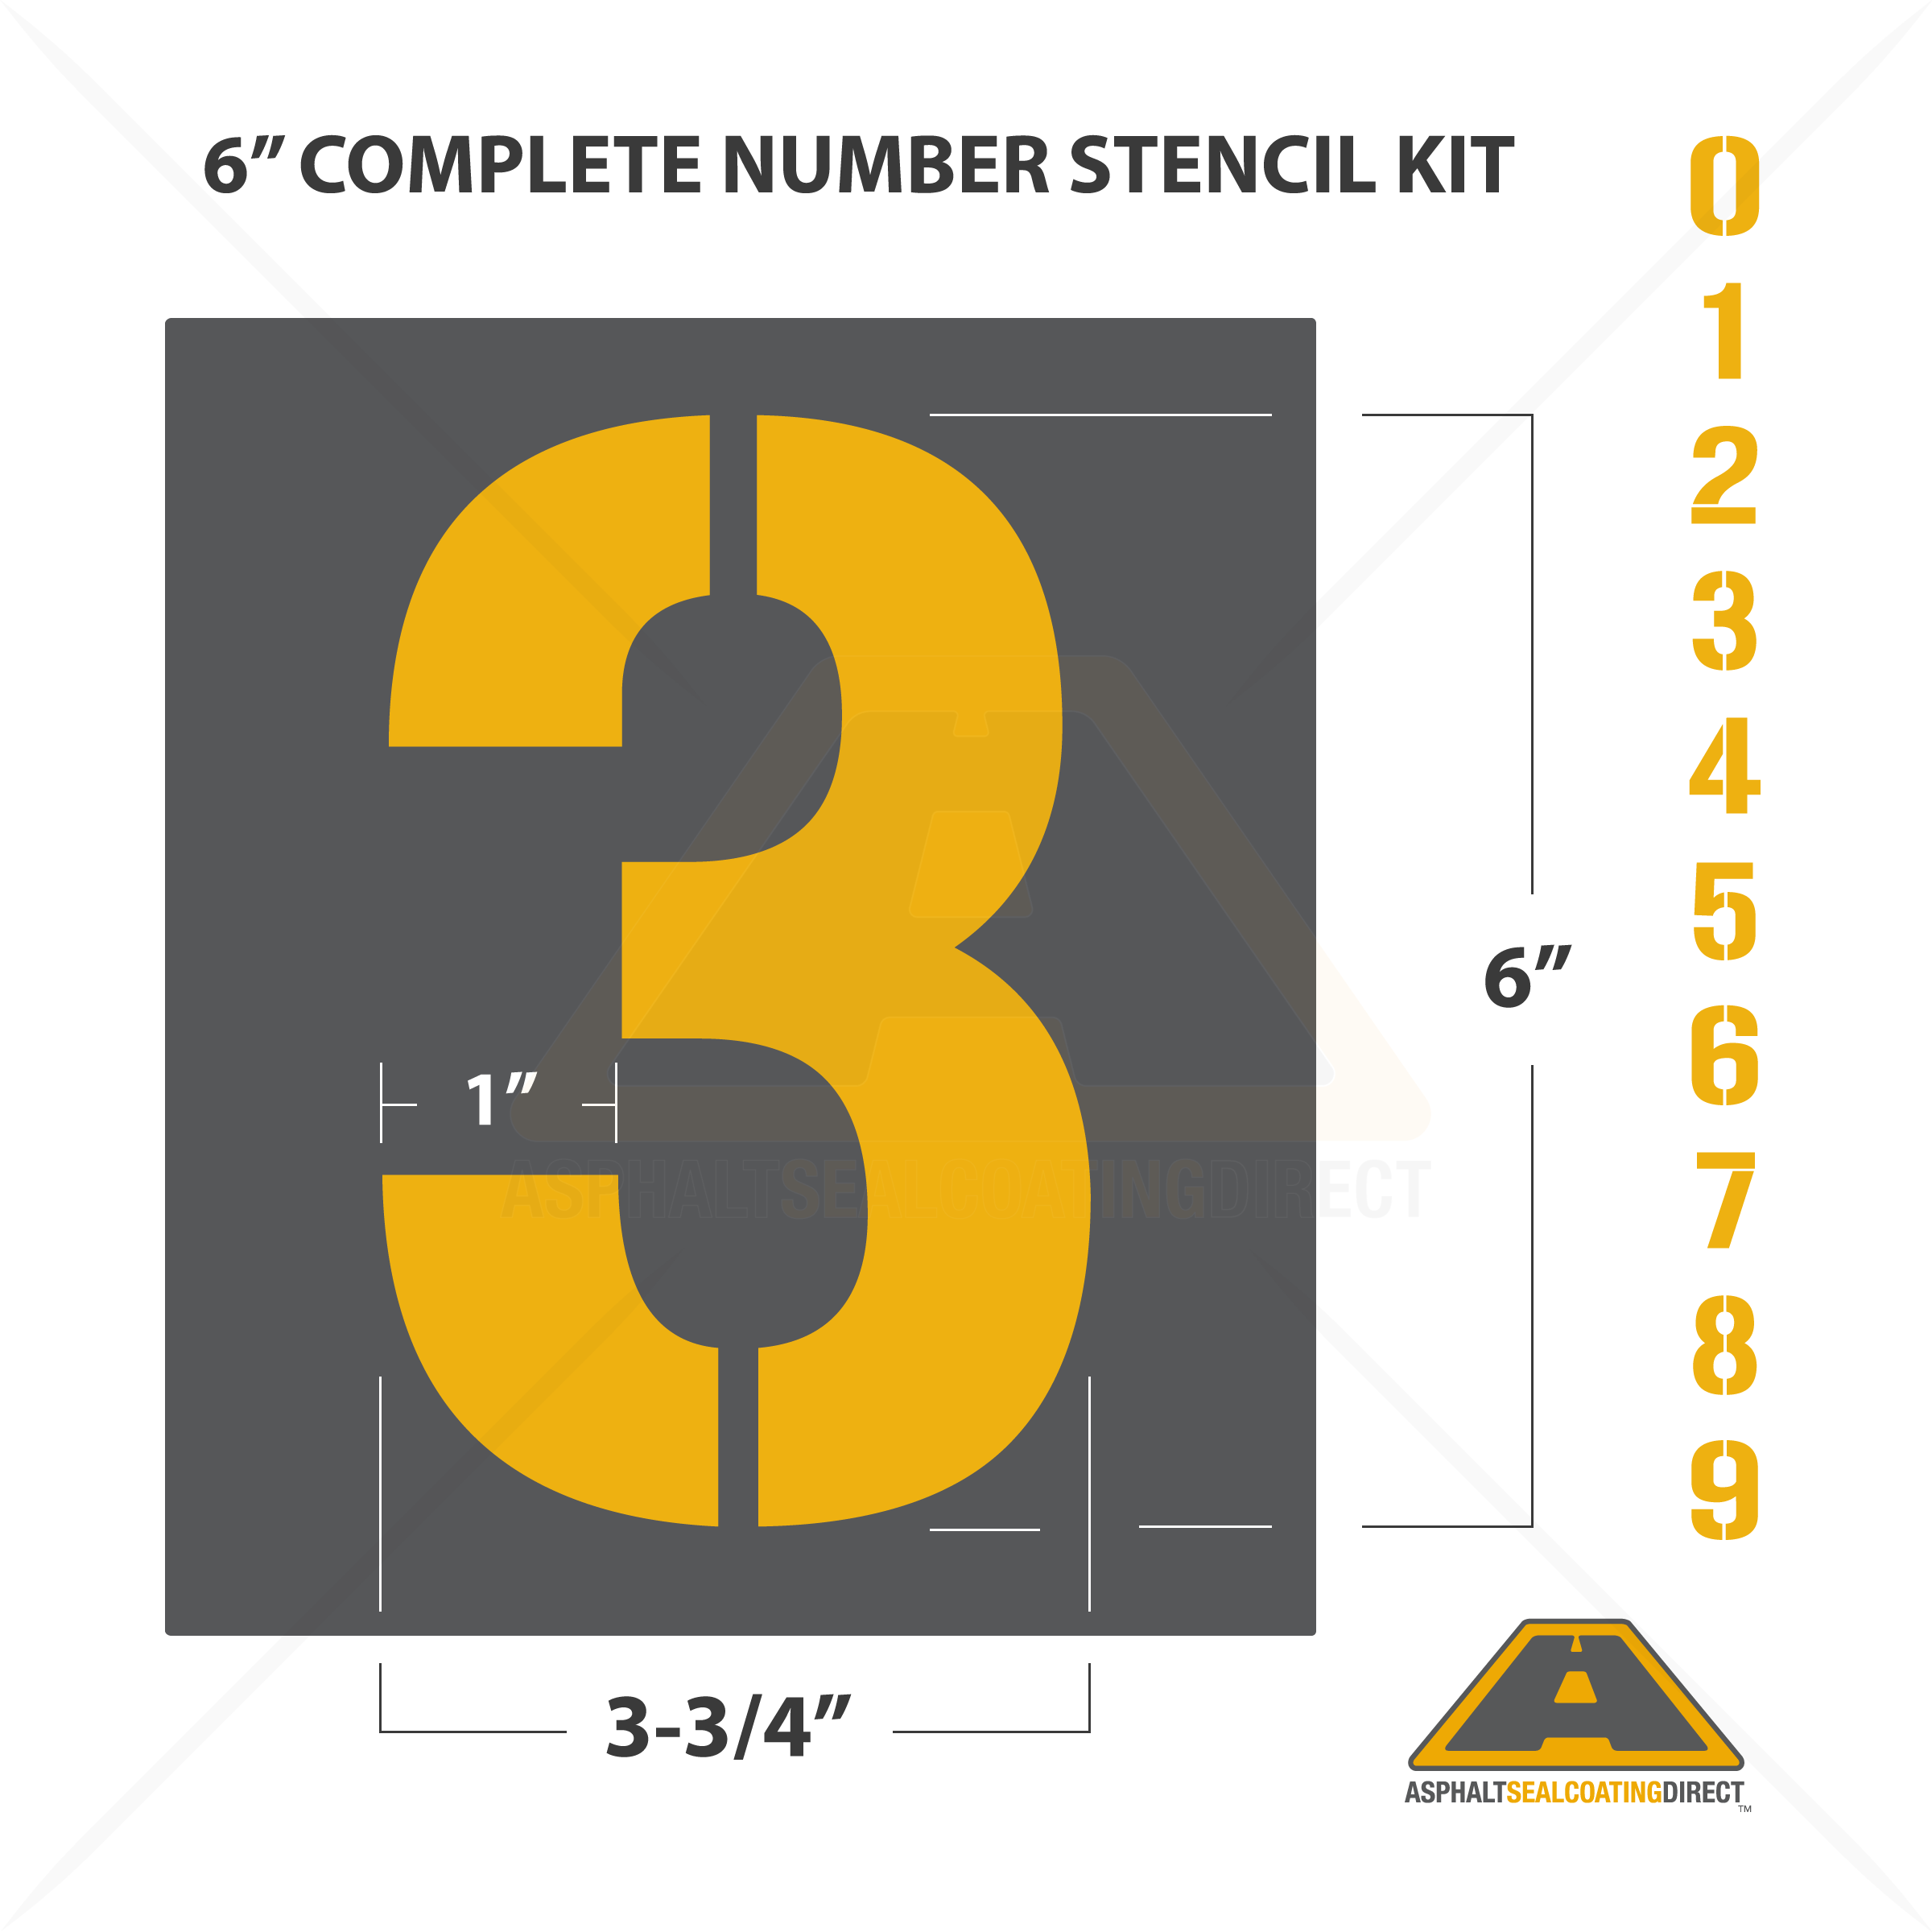 Ych Batch Number Three: Number Parking Lot Stencils Kit For Sale